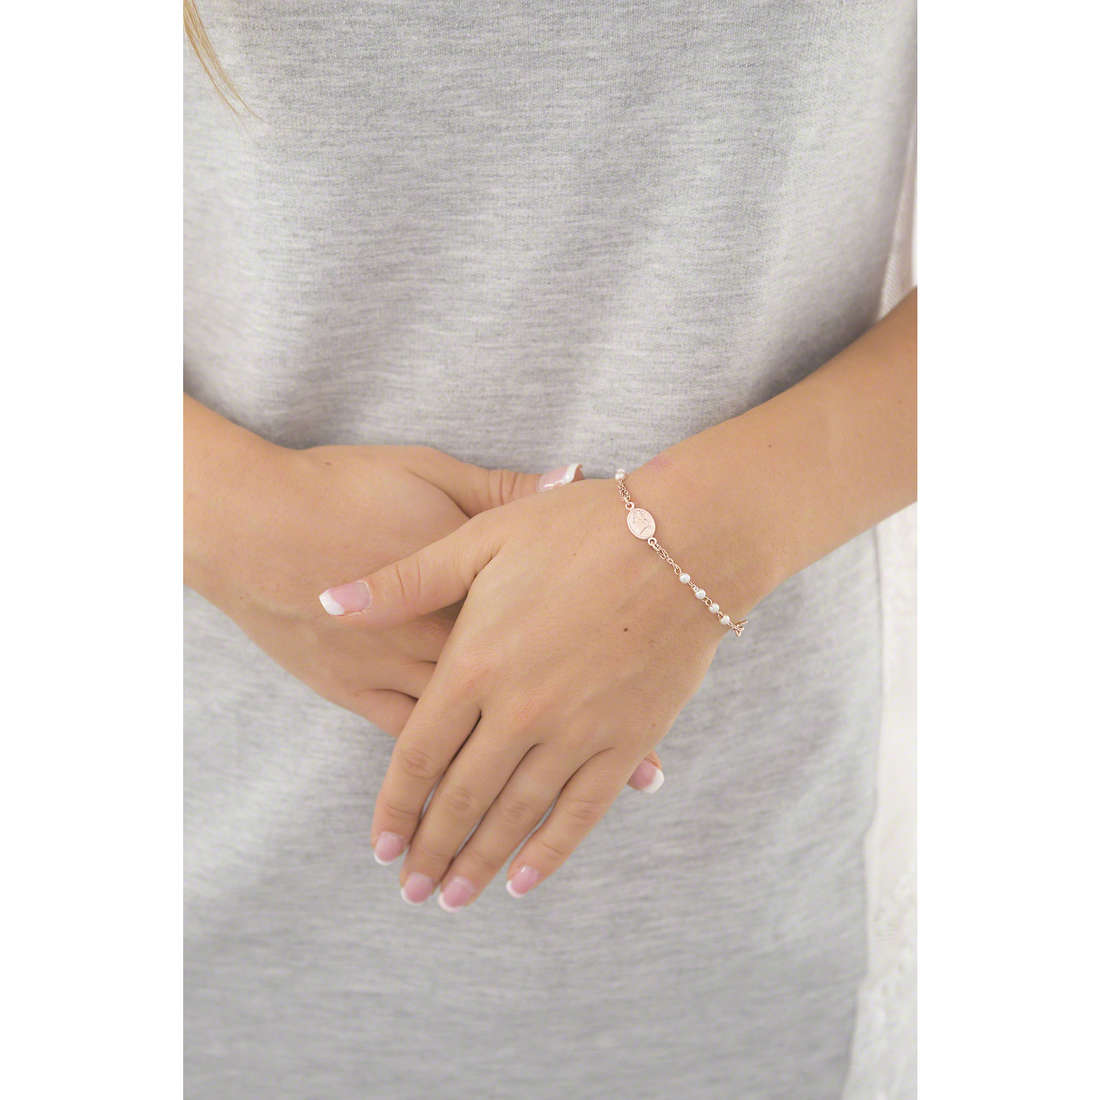 Amen bracelets woman BRORS3 indosso